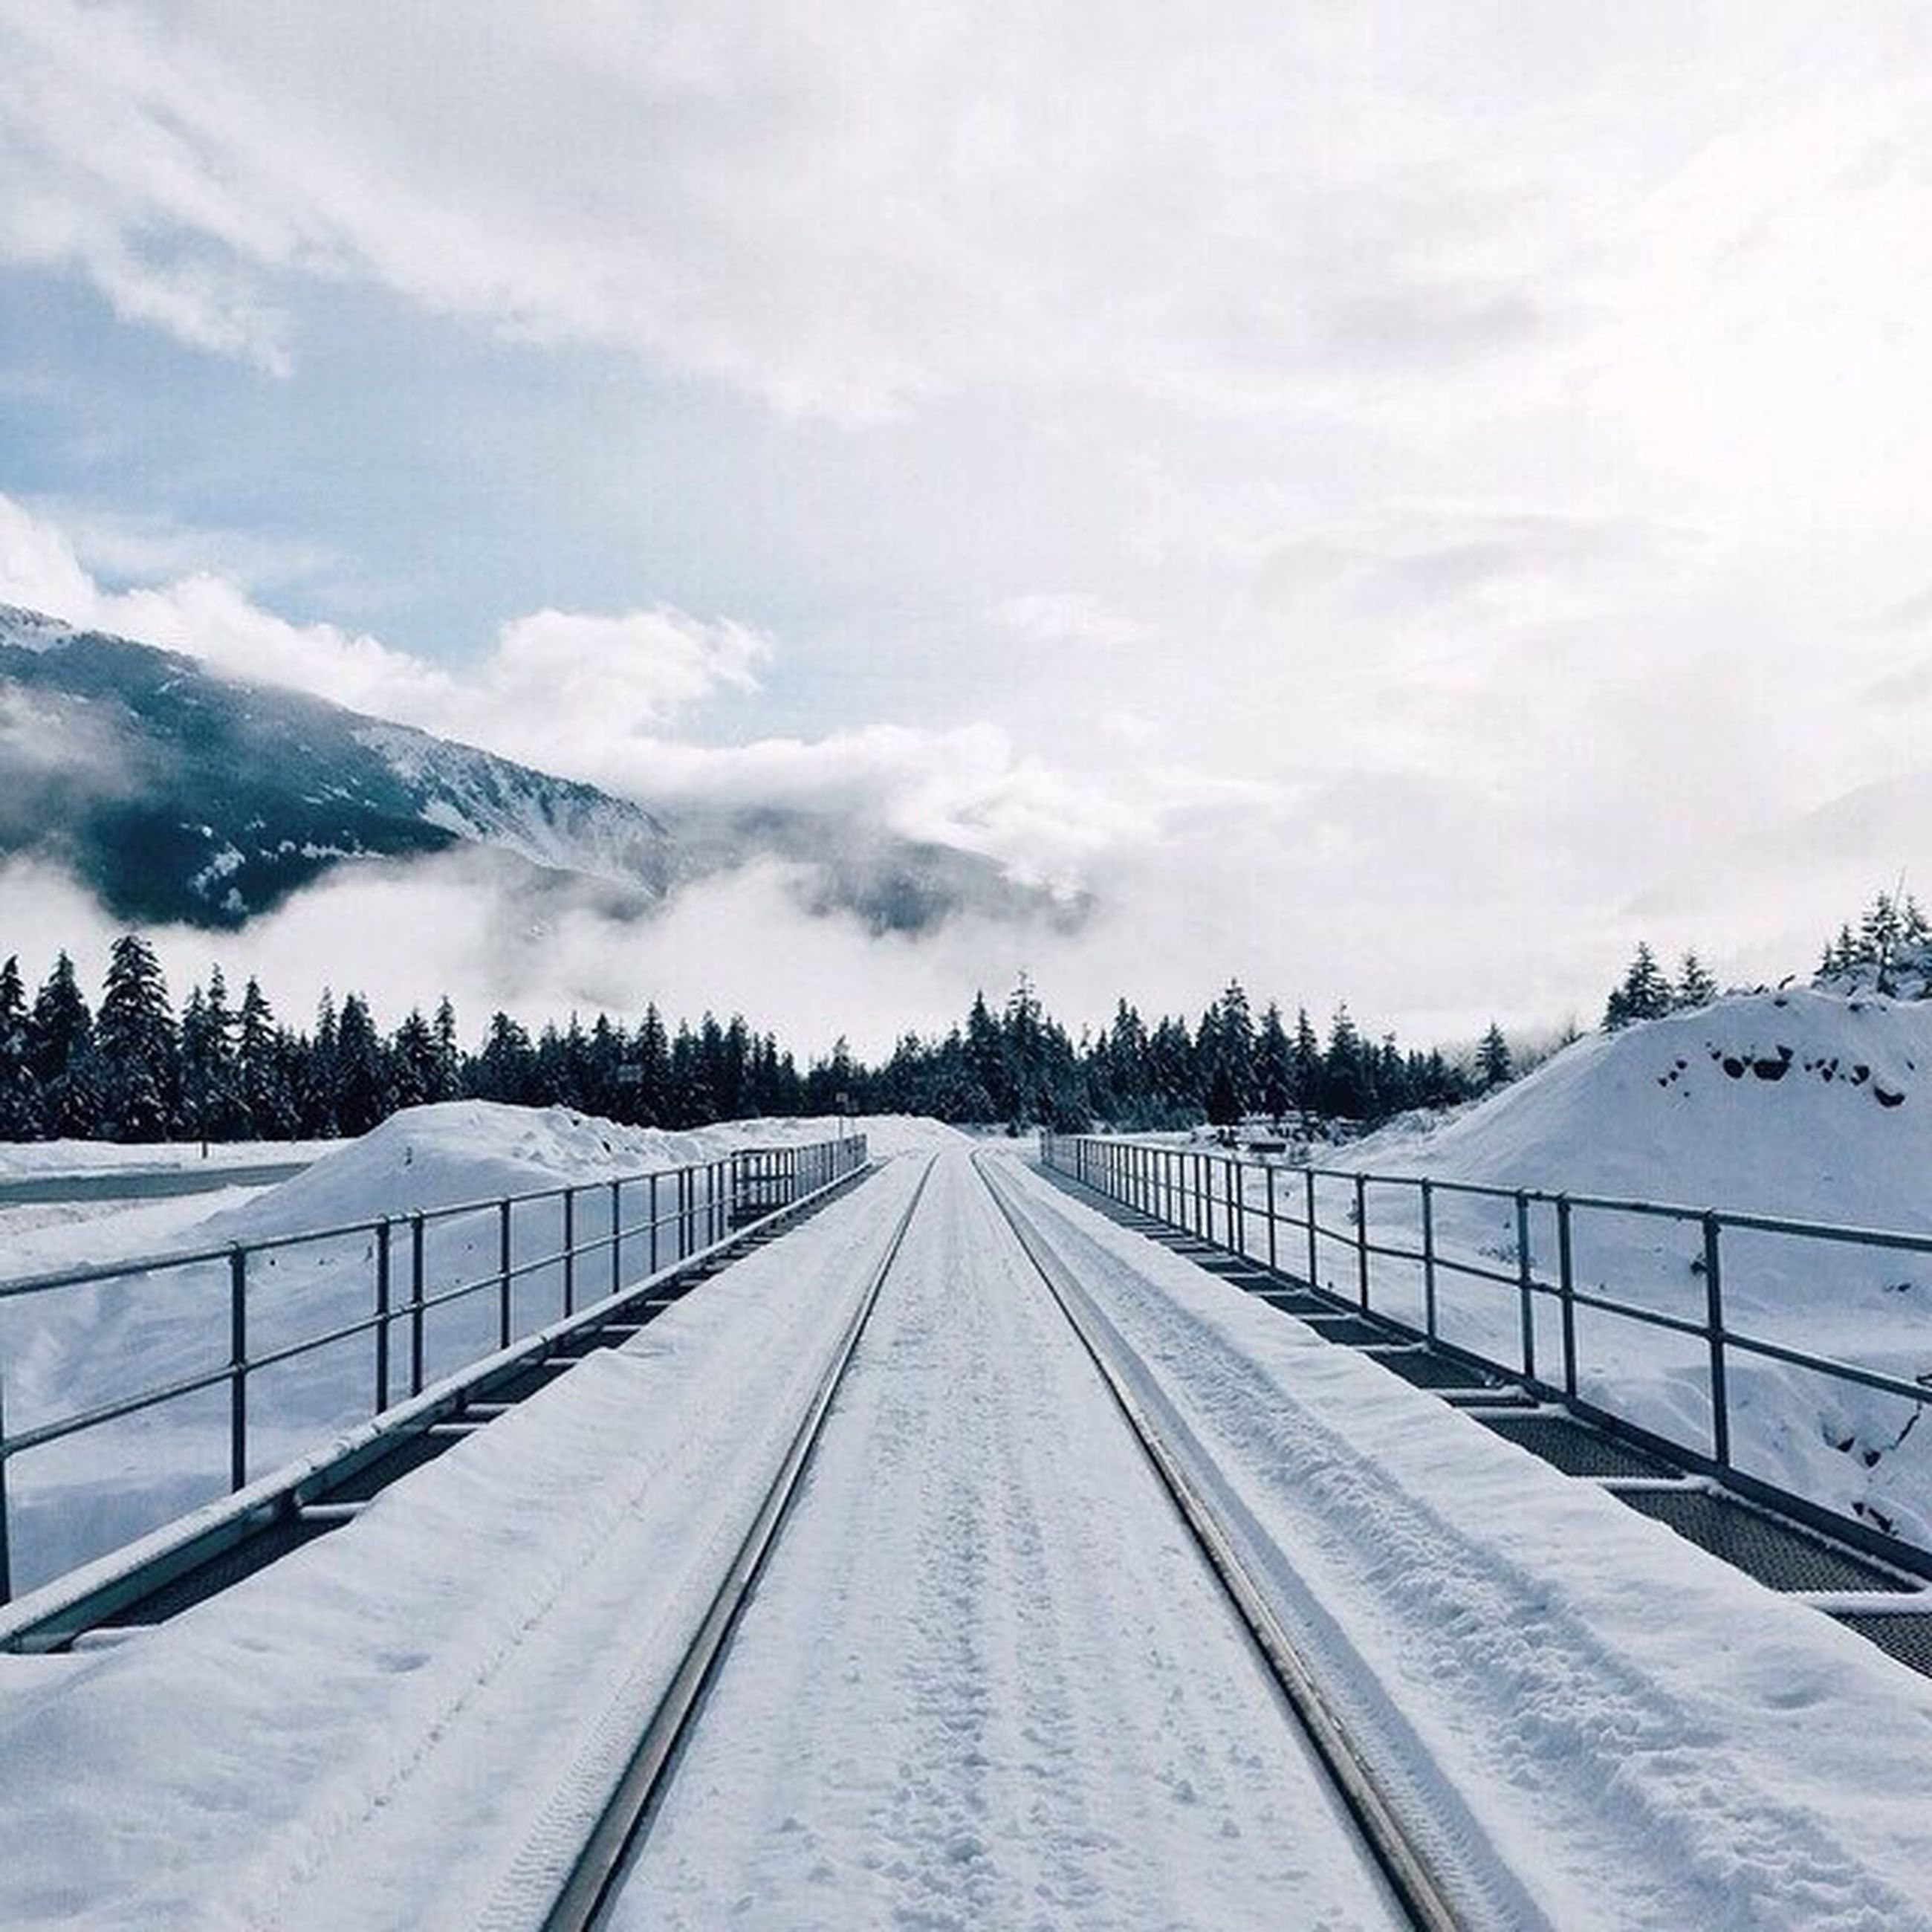 the way forward, snow, winter, cold temperature, sky, diminishing perspective, vanishing point, weather, cloud - sky, season, transportation, tranquil scene, tranquility, nature, railing, road, covering, tree, beauty in nature, cloudy